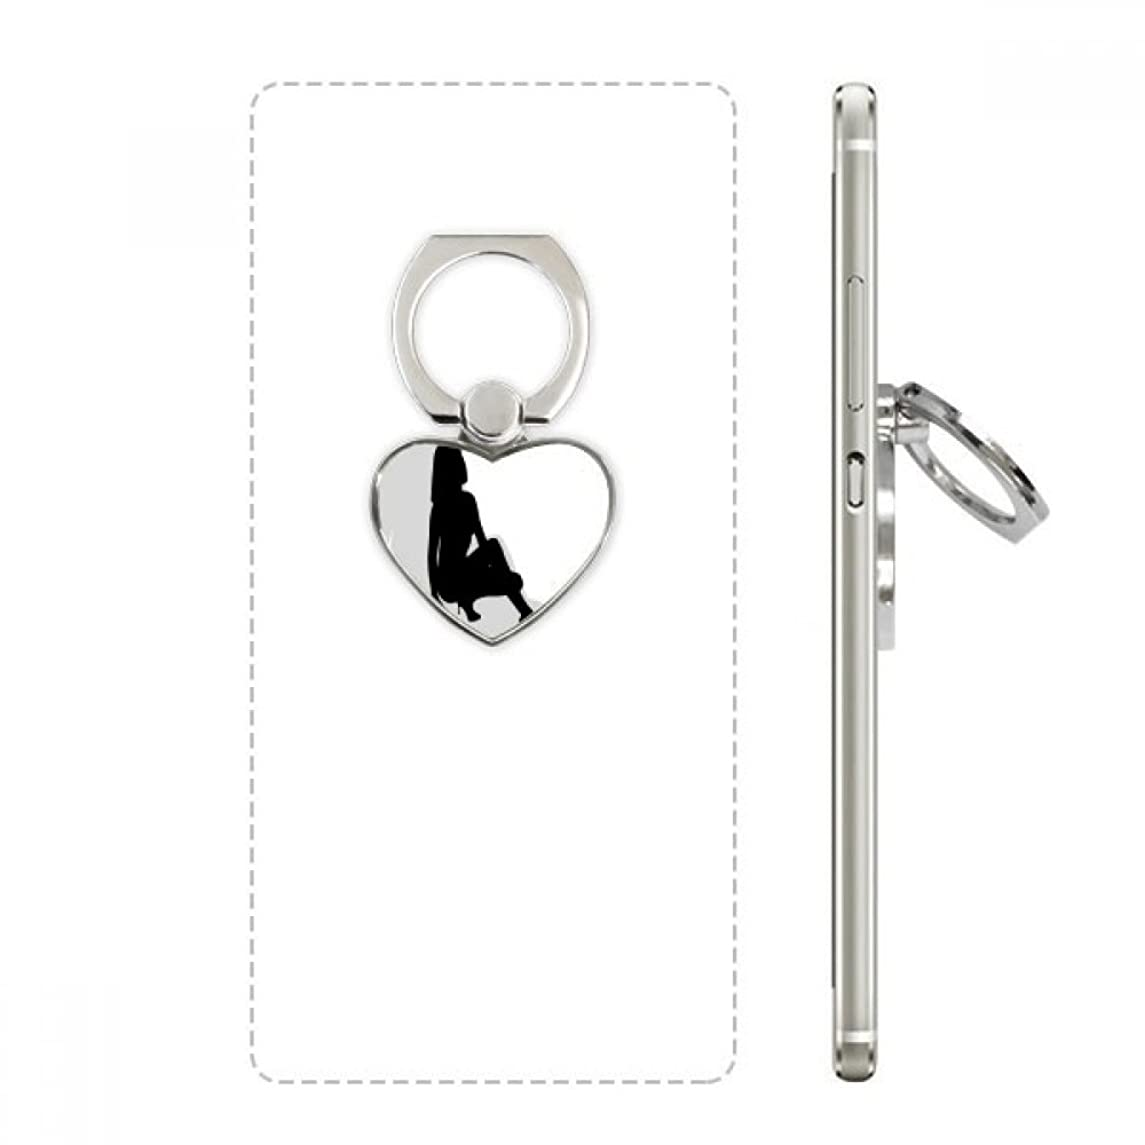 Hot Woman Squats Silhouette Heart Cell Phone Ring Stand Holder Bracket Universal Support Gift